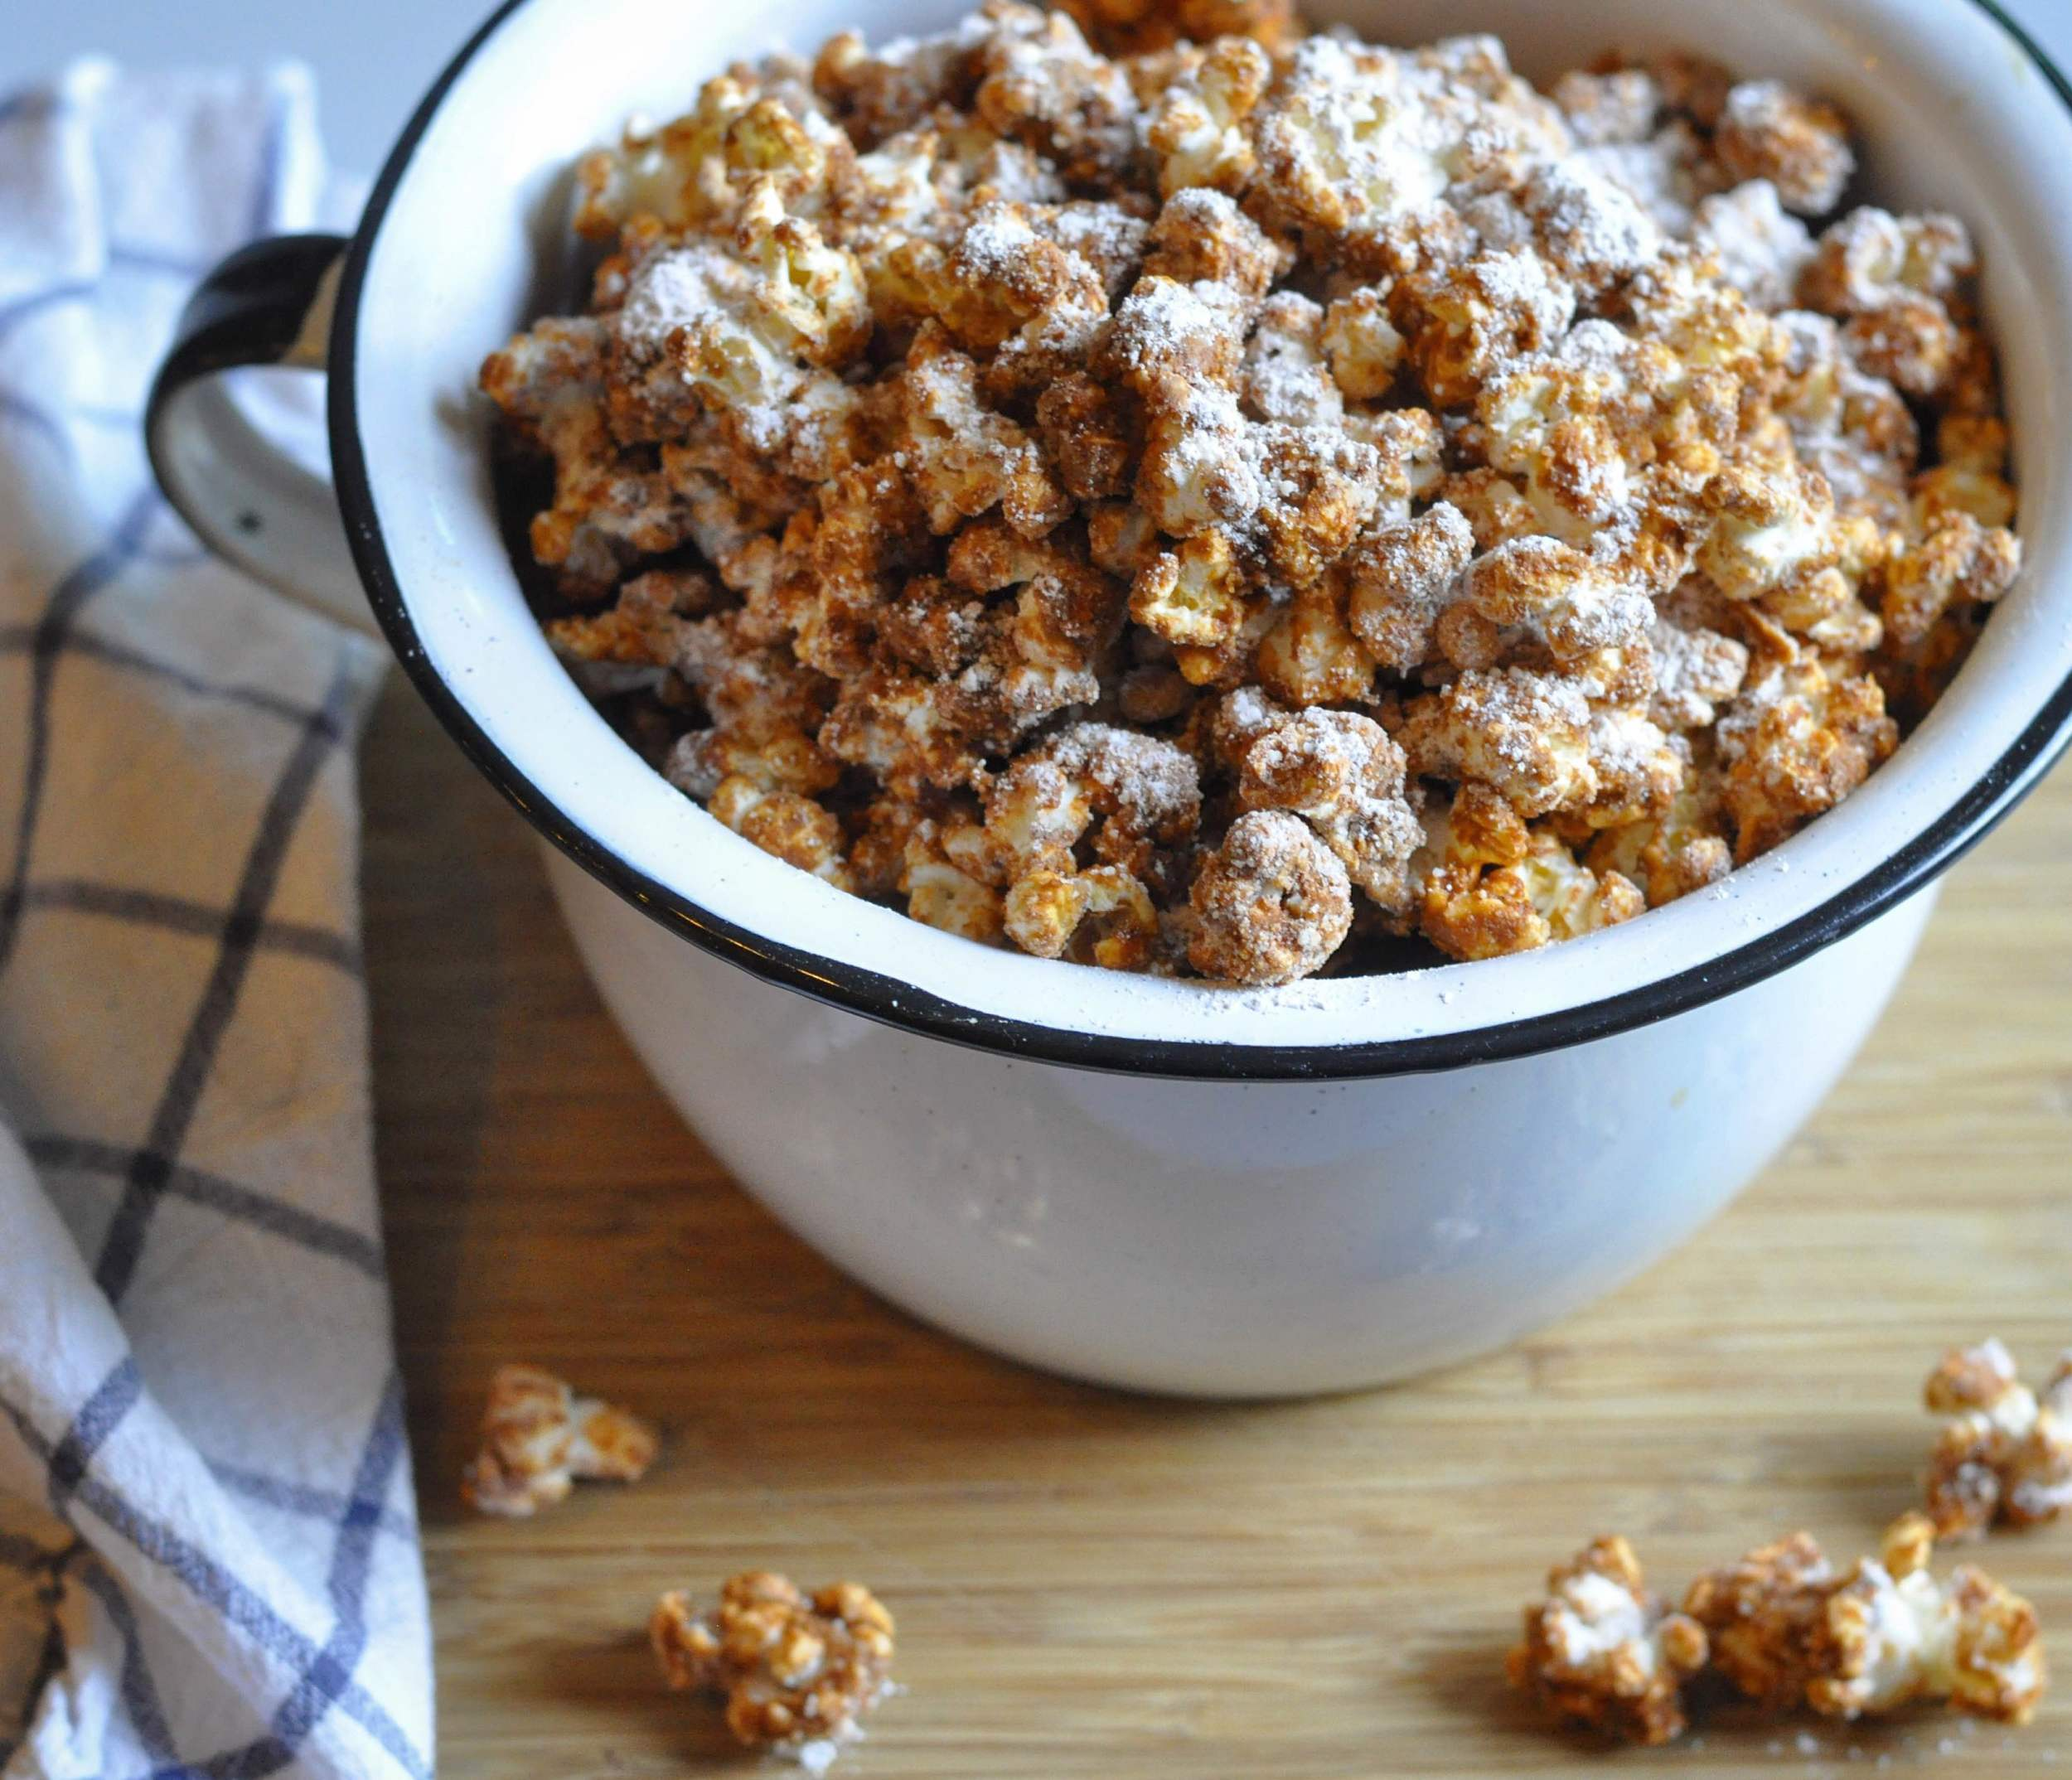 Homemade Dessert Churro Popcorn Recipe - www.coupleinthekitchen.com